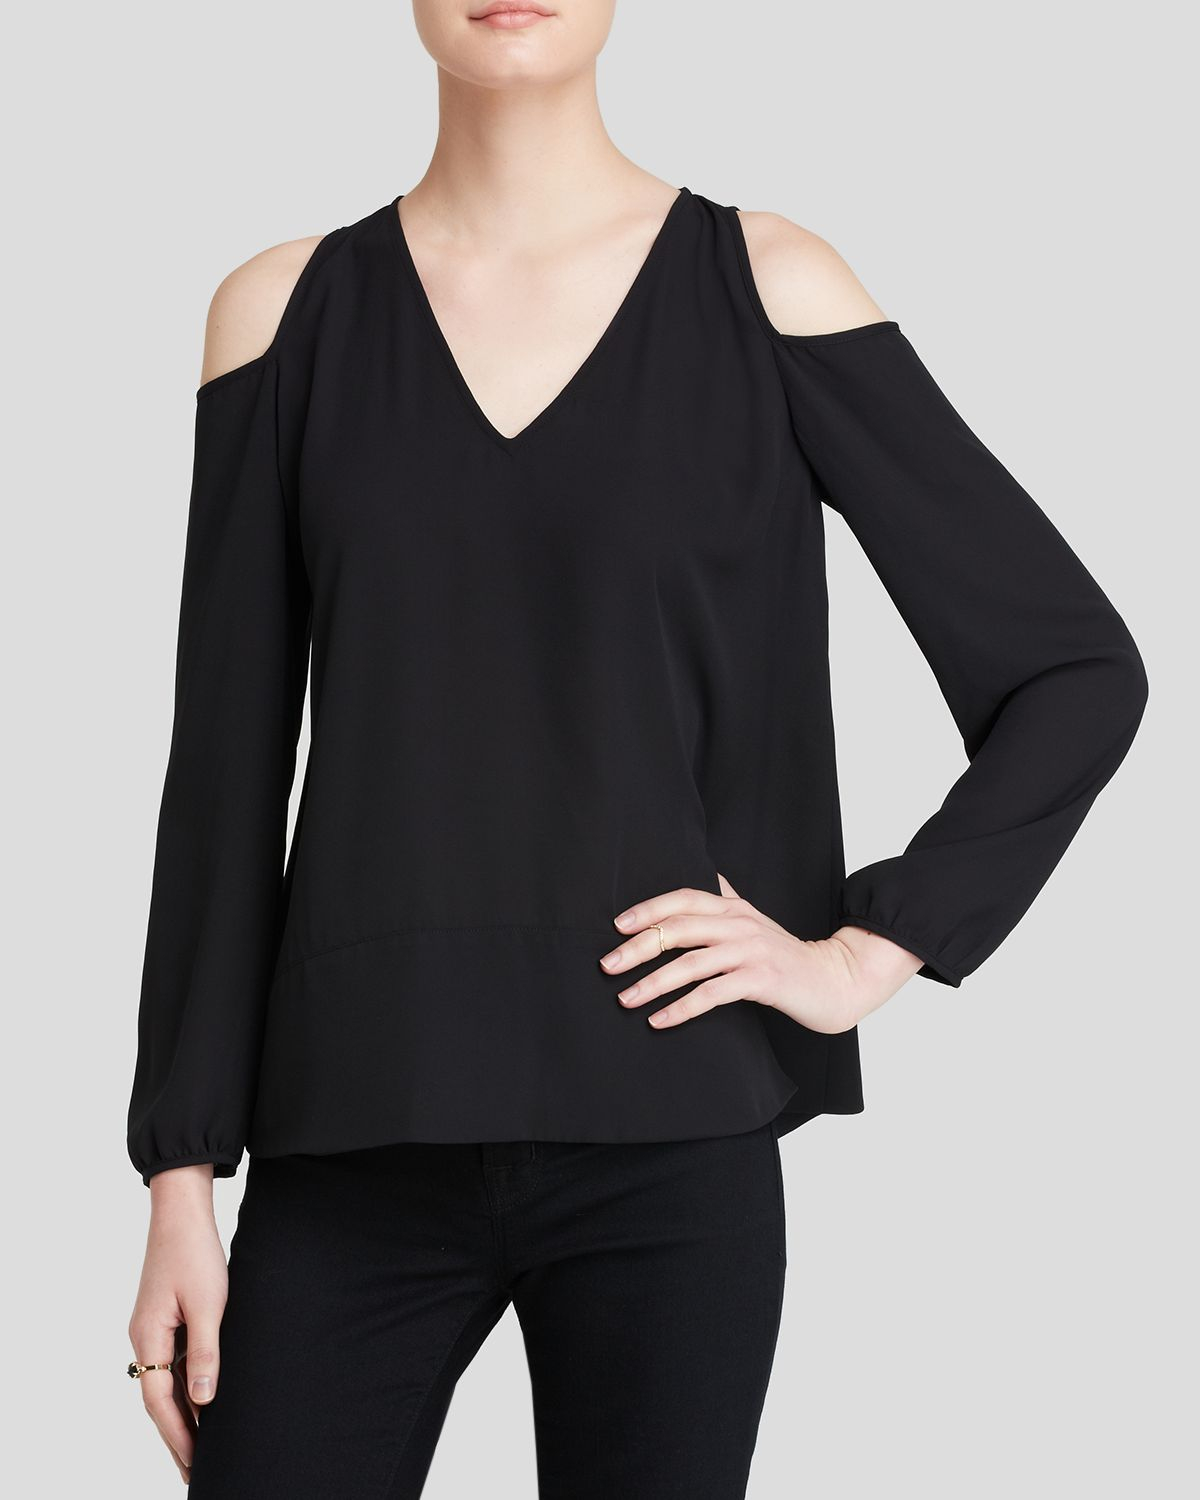 Shop Online at humorrmundiall.ga for the Latest Womens INC International Concepts Shirts, Tunics, Blouses, Halter Tops & More Womens Tops. FREE SHIPPING AVAILABLE! Macy's Presents: The Edit- A curated mix of fashion and inspiration Check It Out. I.N.C. Cutout V-Neck Top, Created for Macy's.